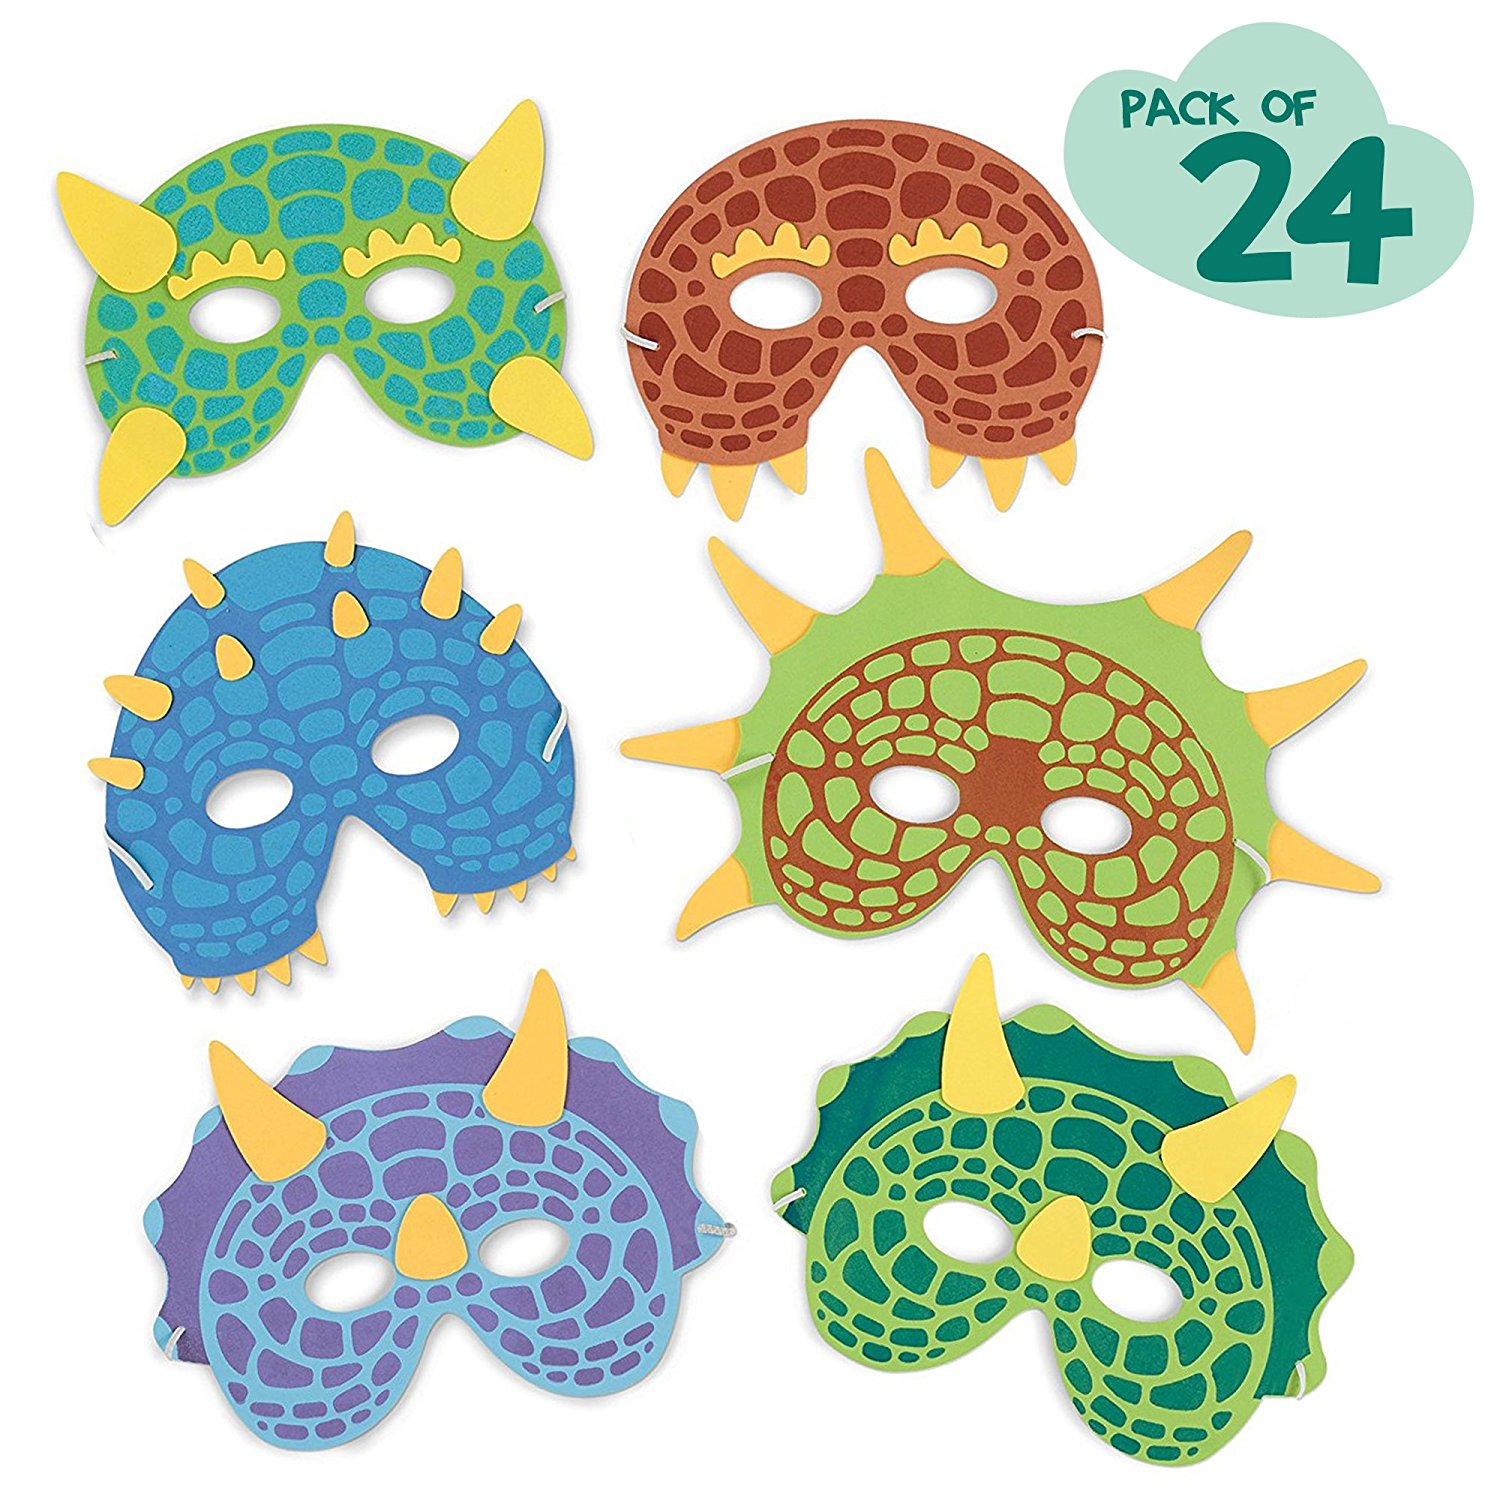 Dinosaur birthday party supplies 24 dinosaur party masks for M m halloween decorations